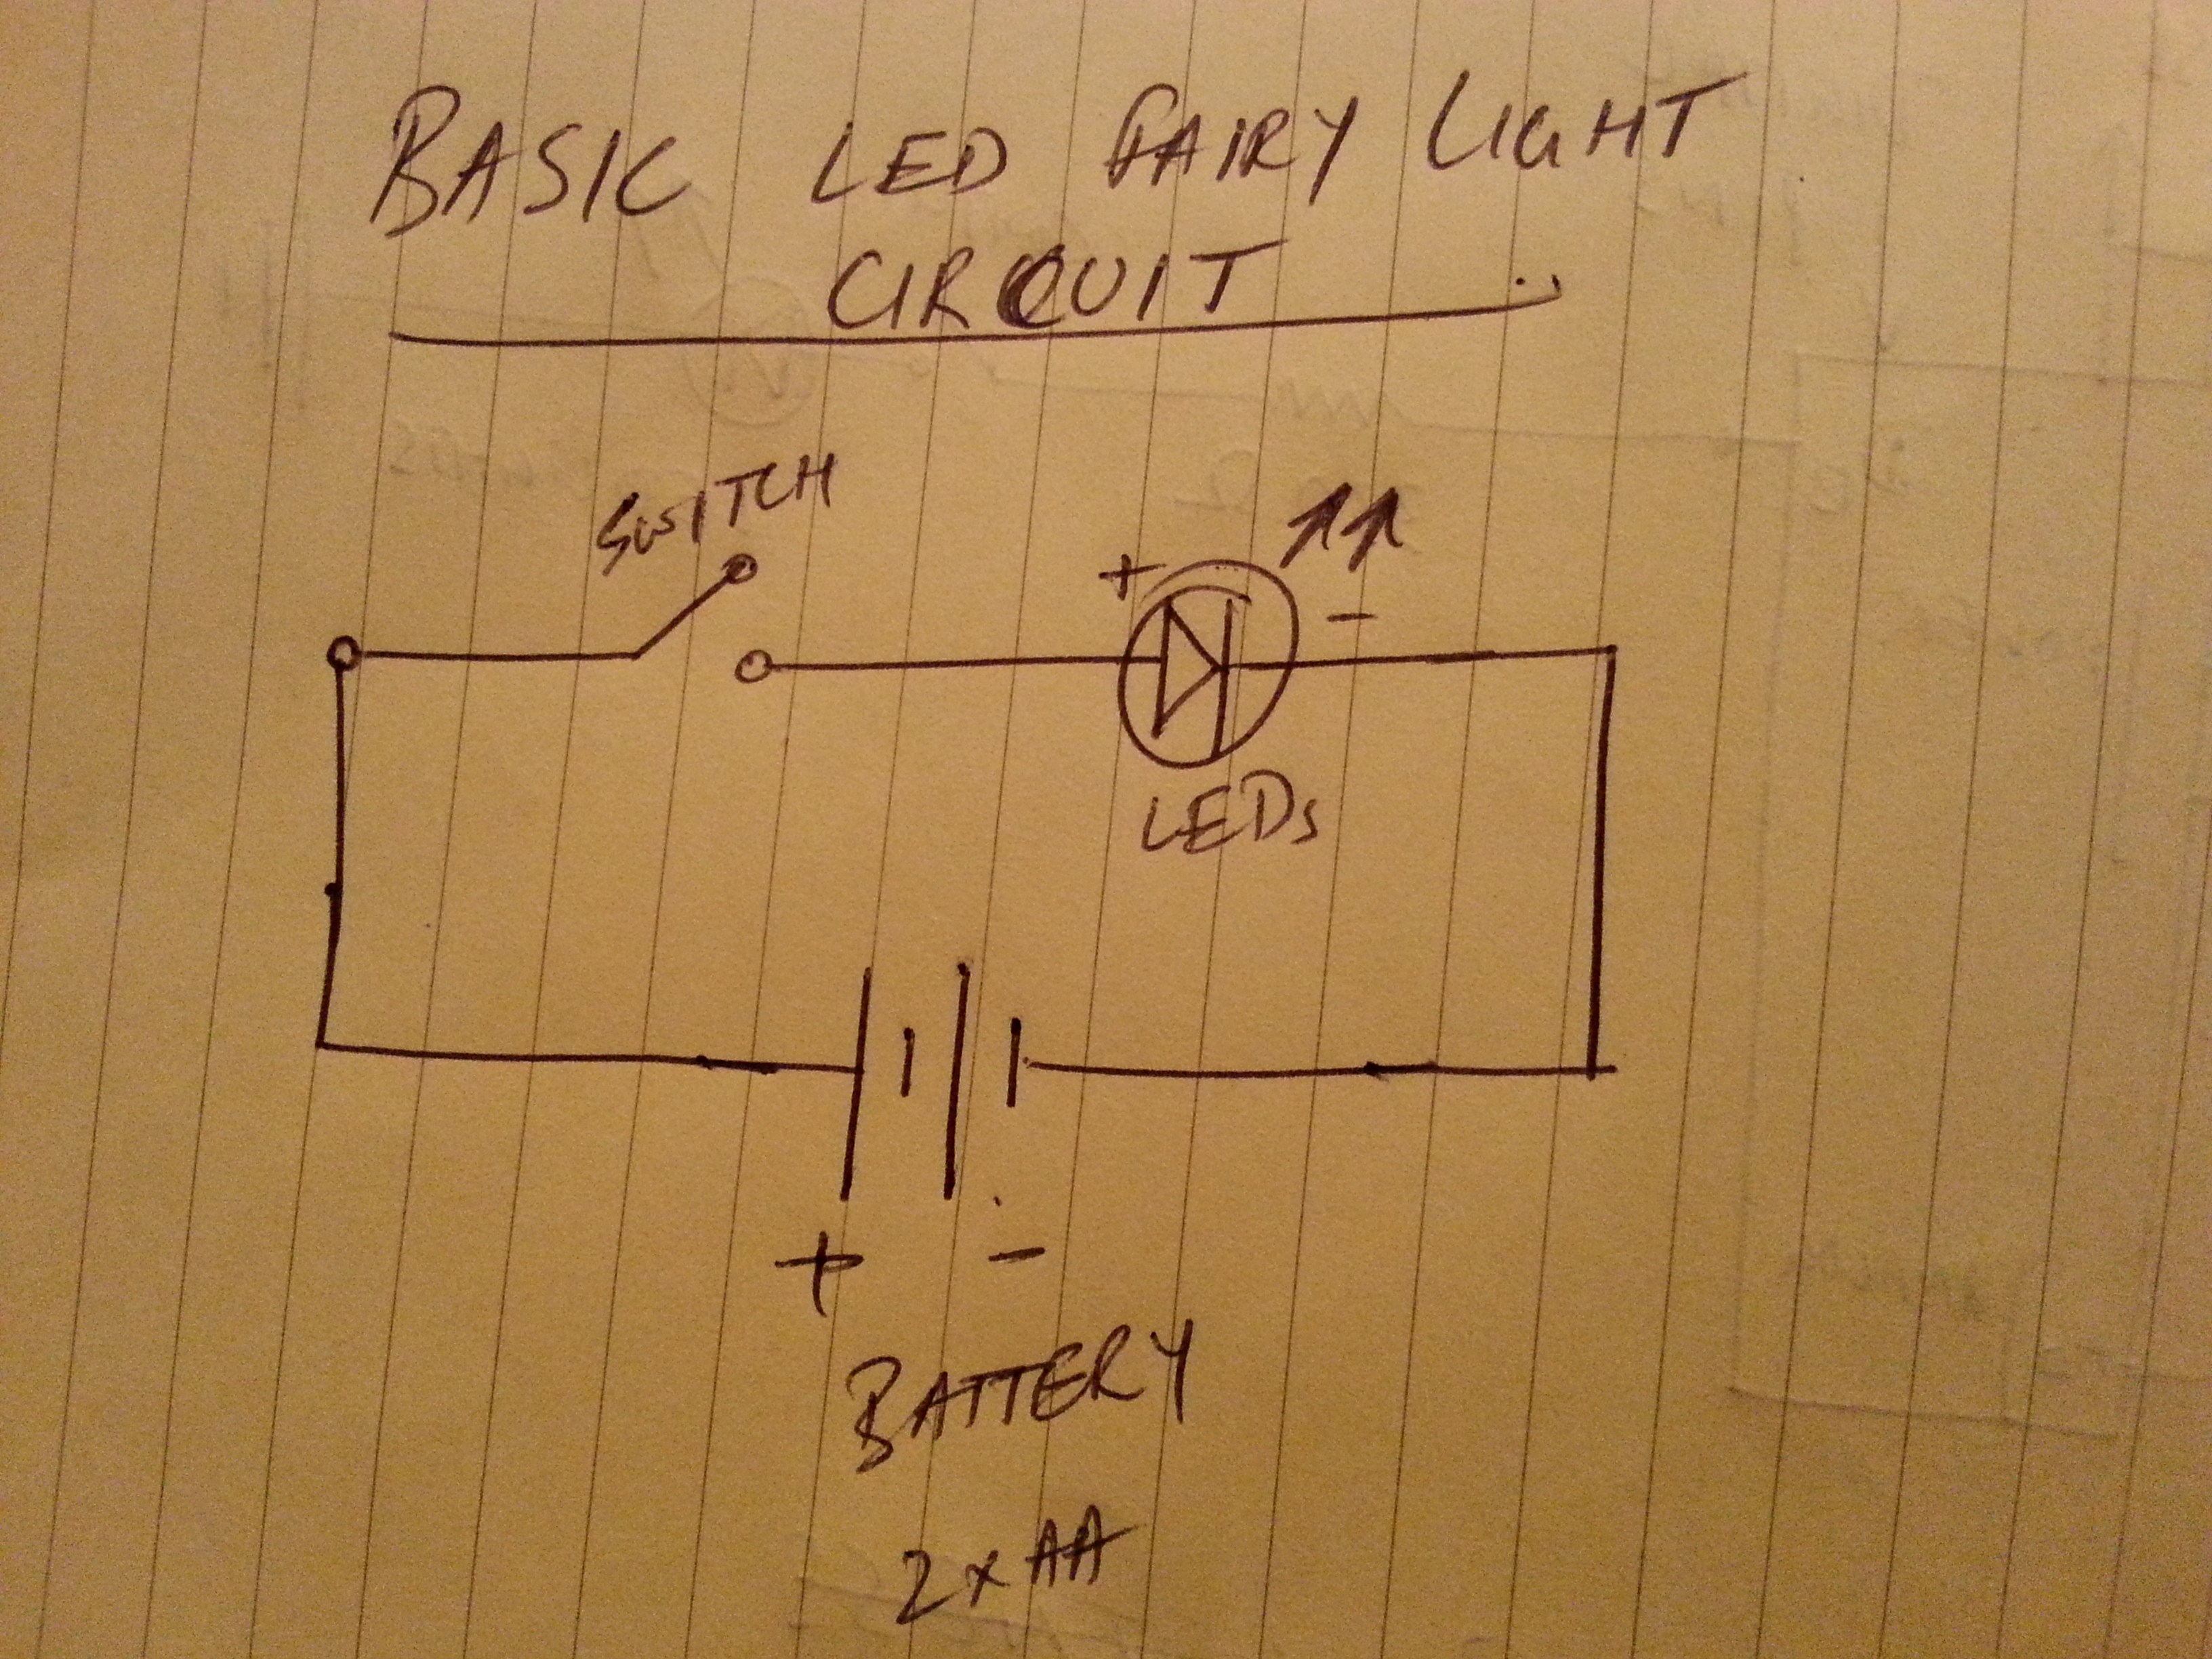 fairy light wiring diagram fairy image wiring diagram hacking xmas fairy lights arduino artineering on fairy light wiring diagram